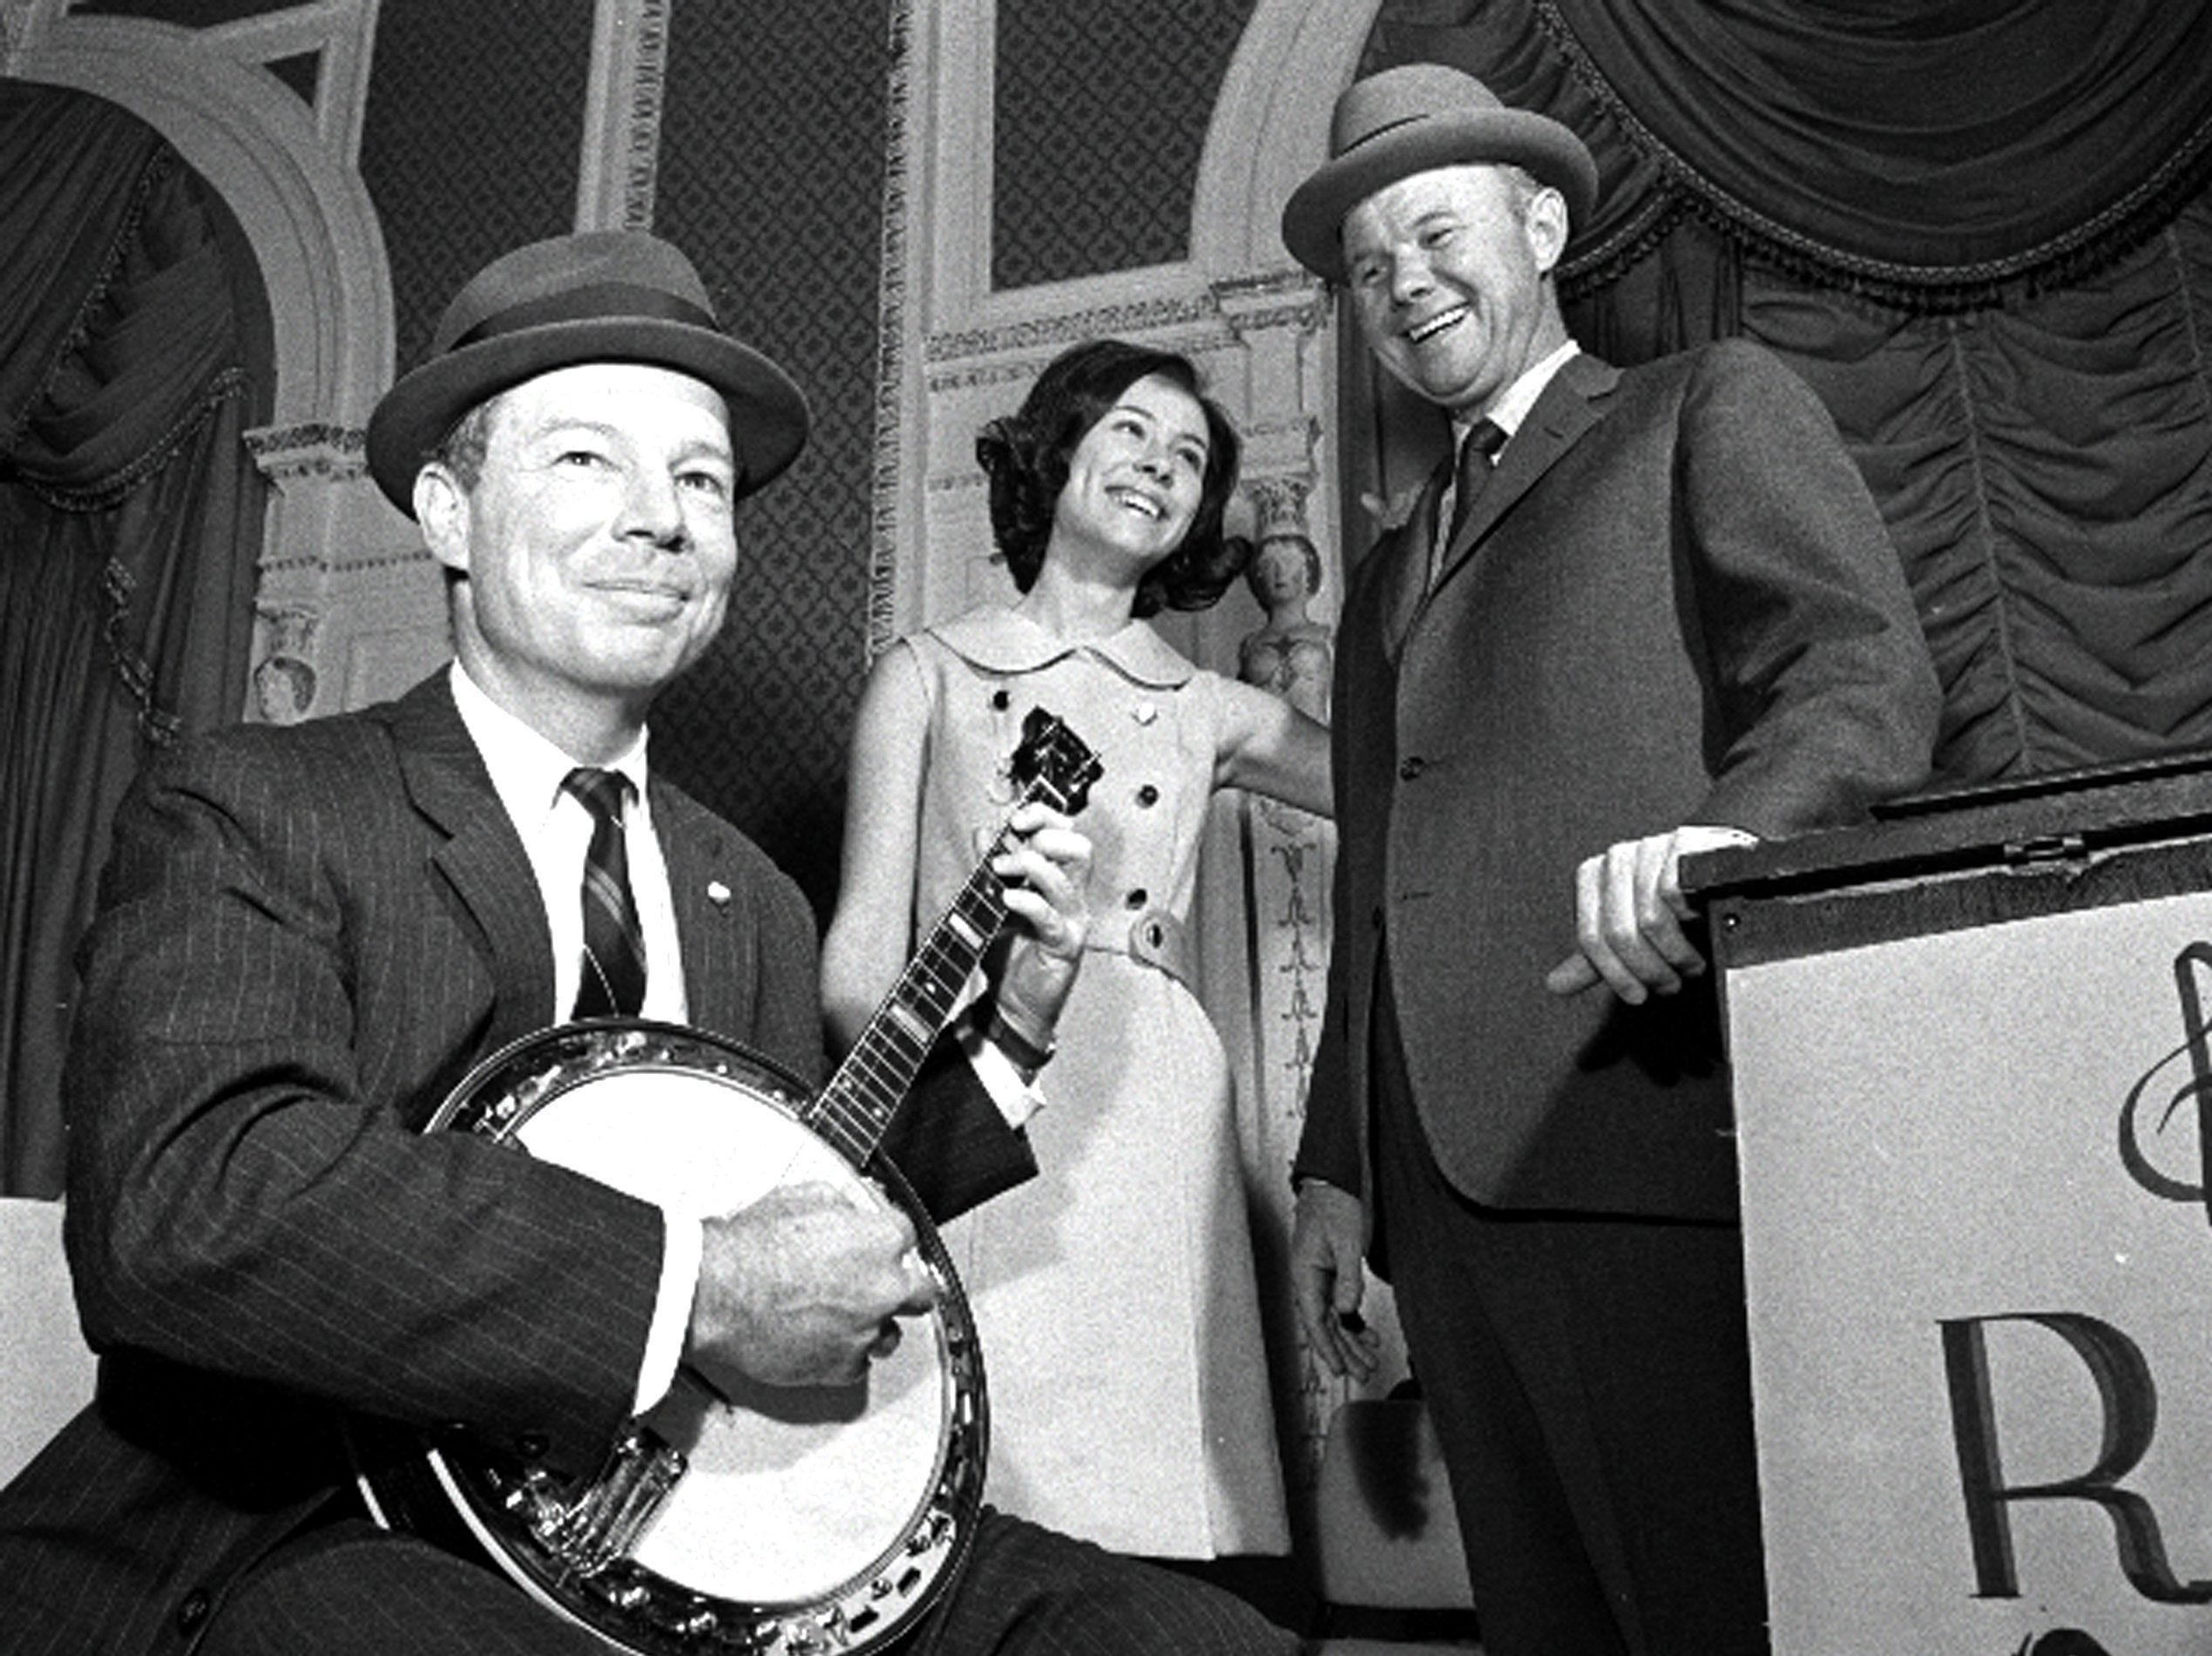 S. Toof Brown Jr. (Left) president of the Cotton Carnival Association, got the evening in tune at the Crown and Sceptre kickoff dinner at the Sheraton-Peabody on Jan 8, 1969. With him are Memphis Junior Miss Betty Ann Hunt and John Starks, co-chairman. The dinner marked the beginning of the carnival fund drive.